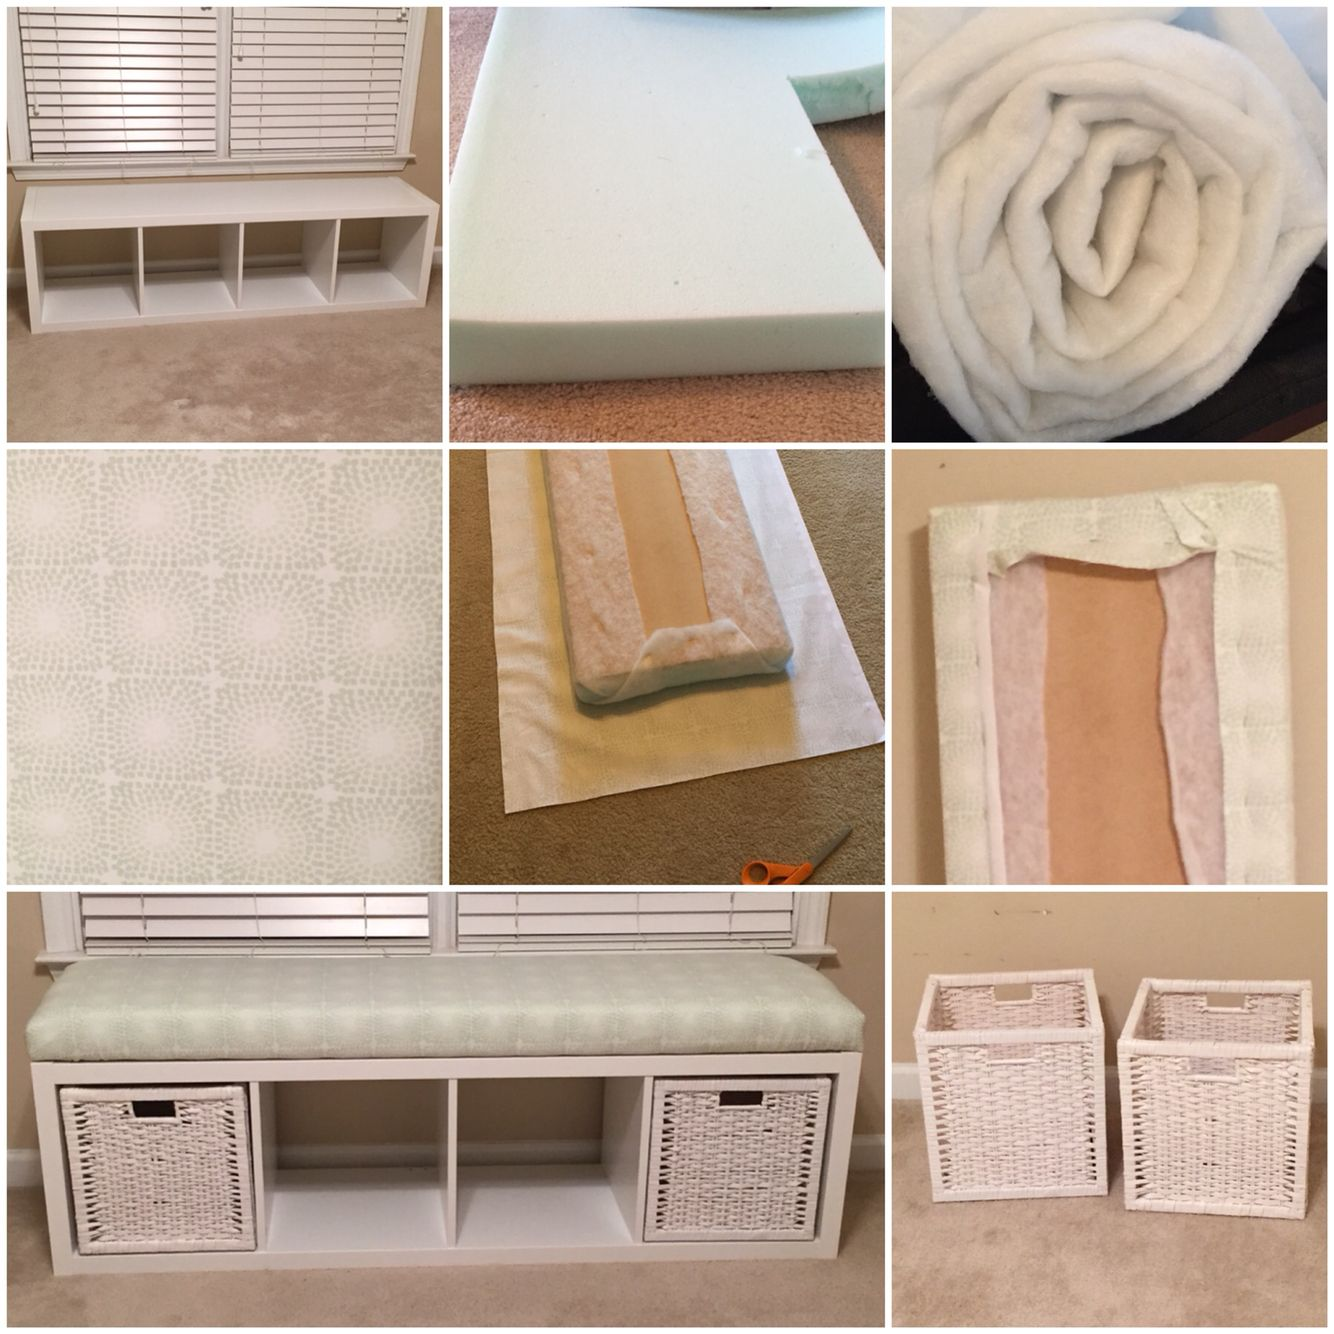 IKEA hack - shelving unit turned into a window bench for ...